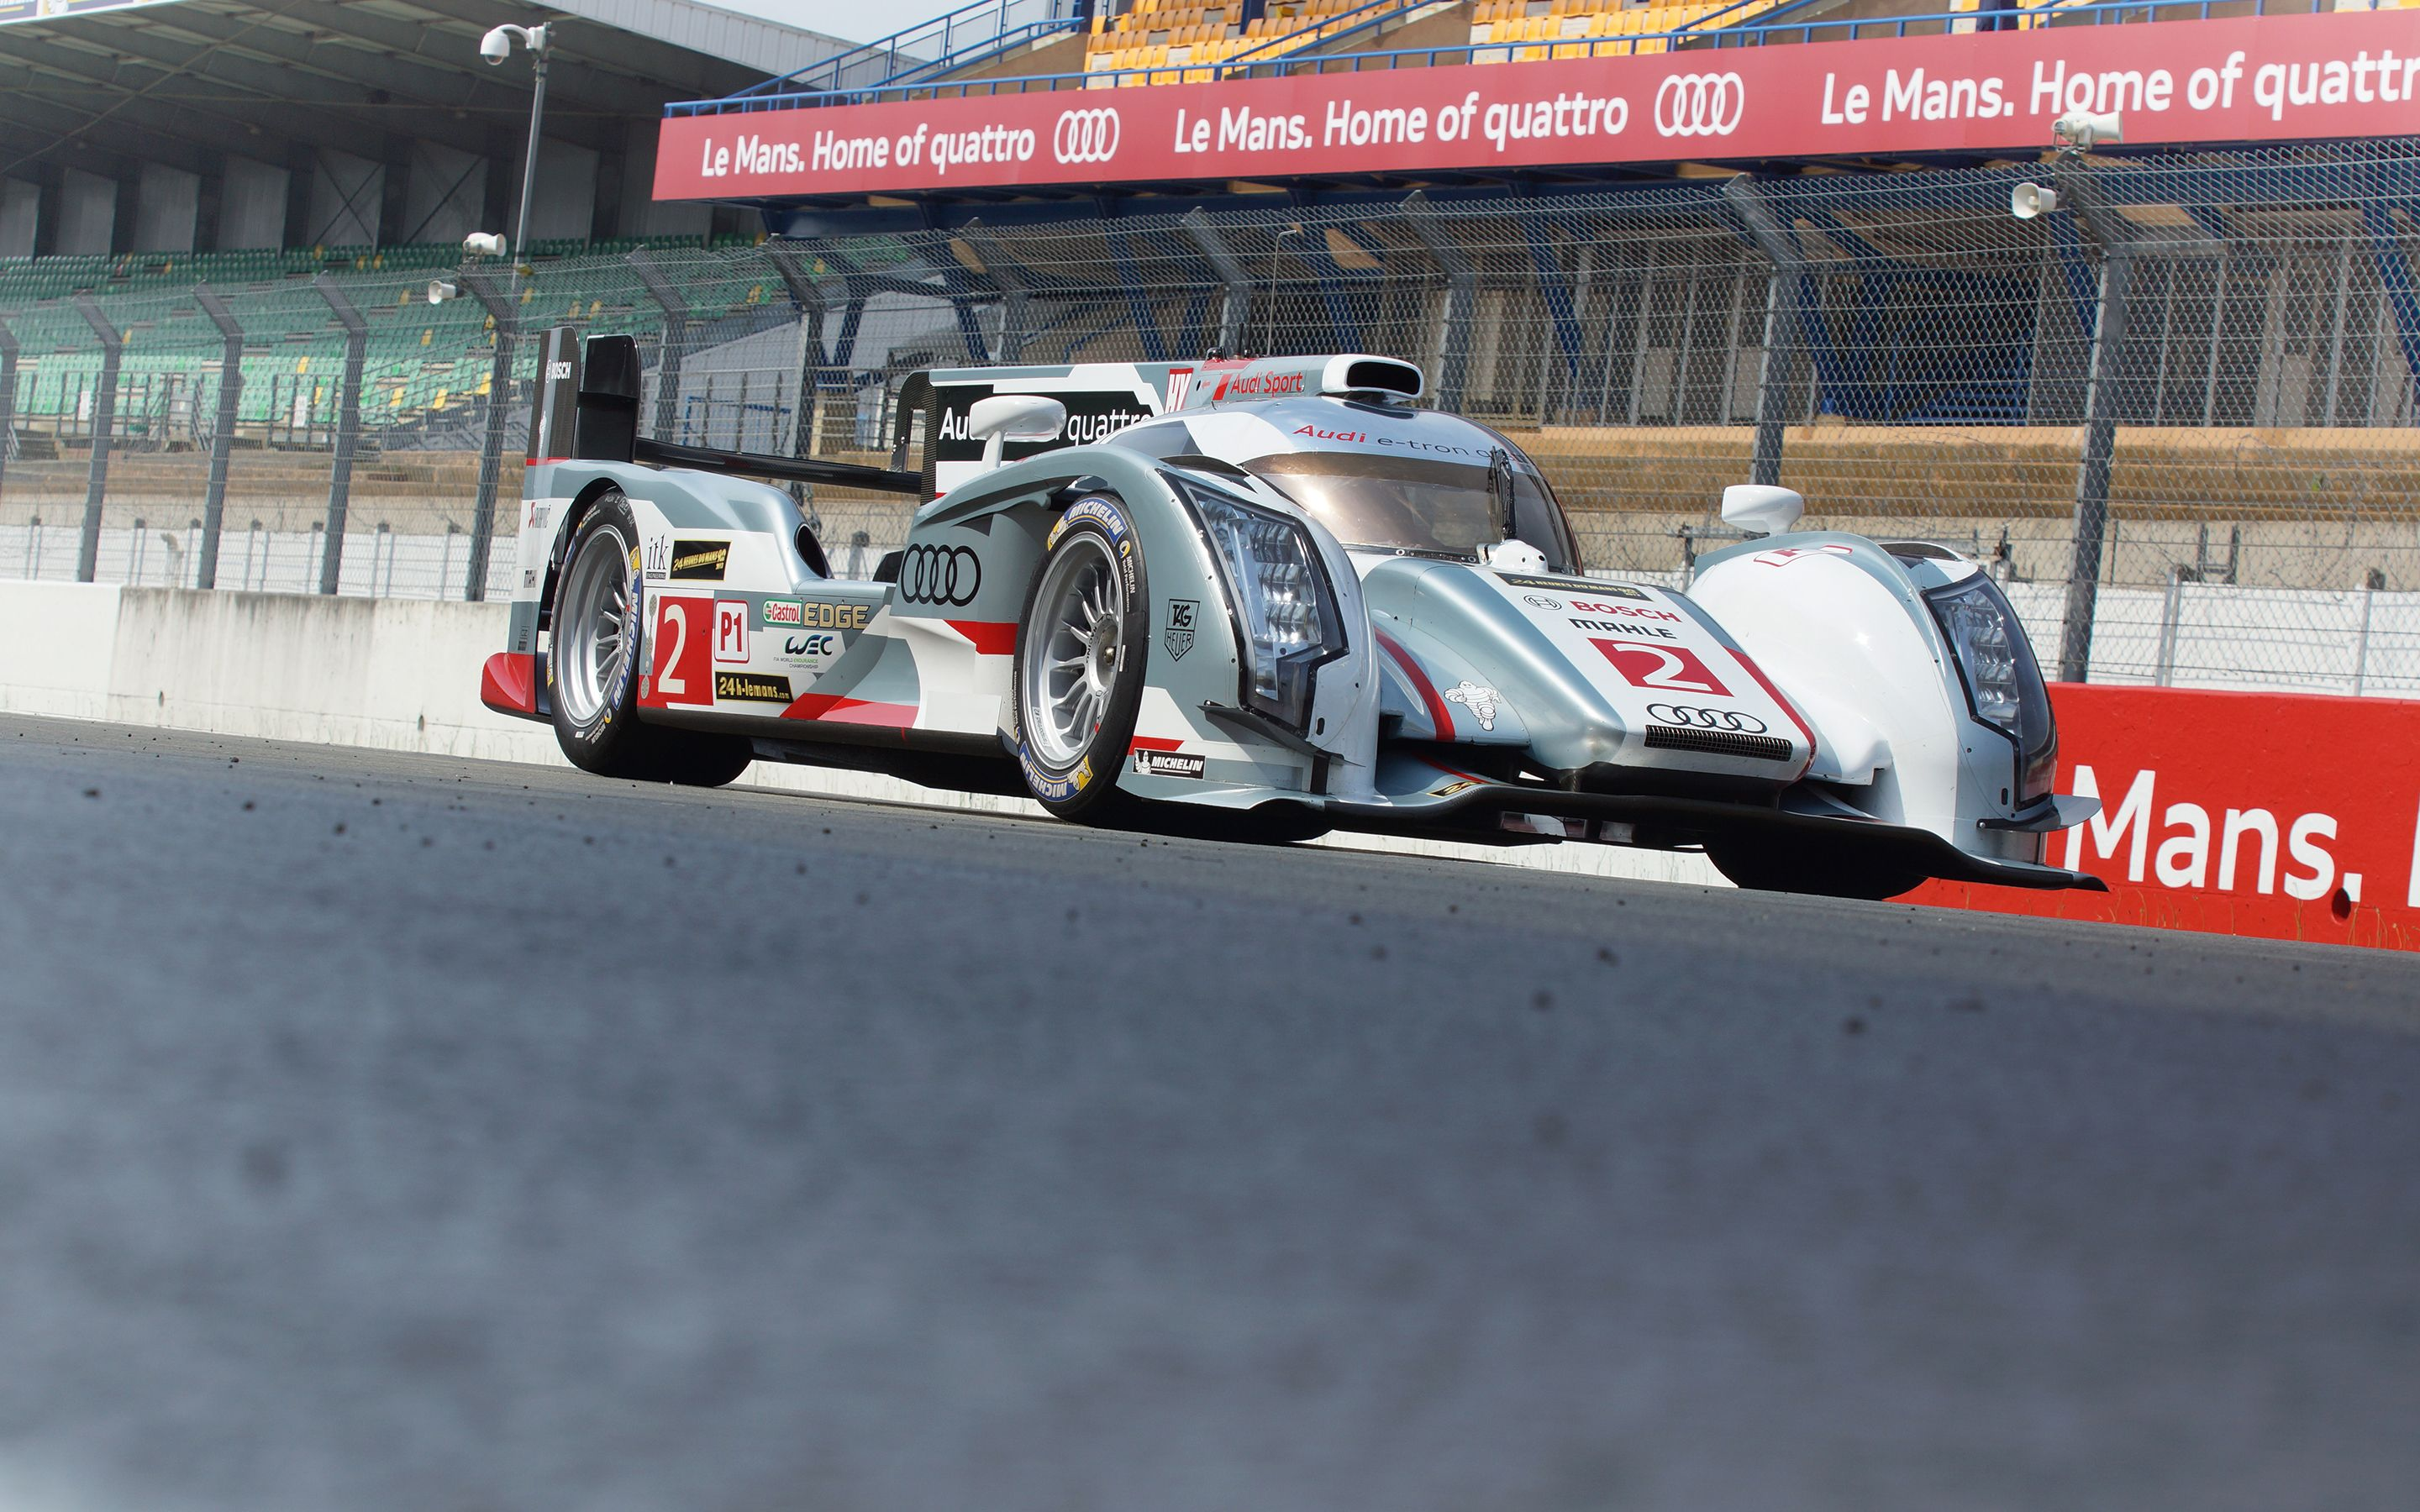 WotD: Bertram's House – Audi R18 in Le Mans, Home of quattro